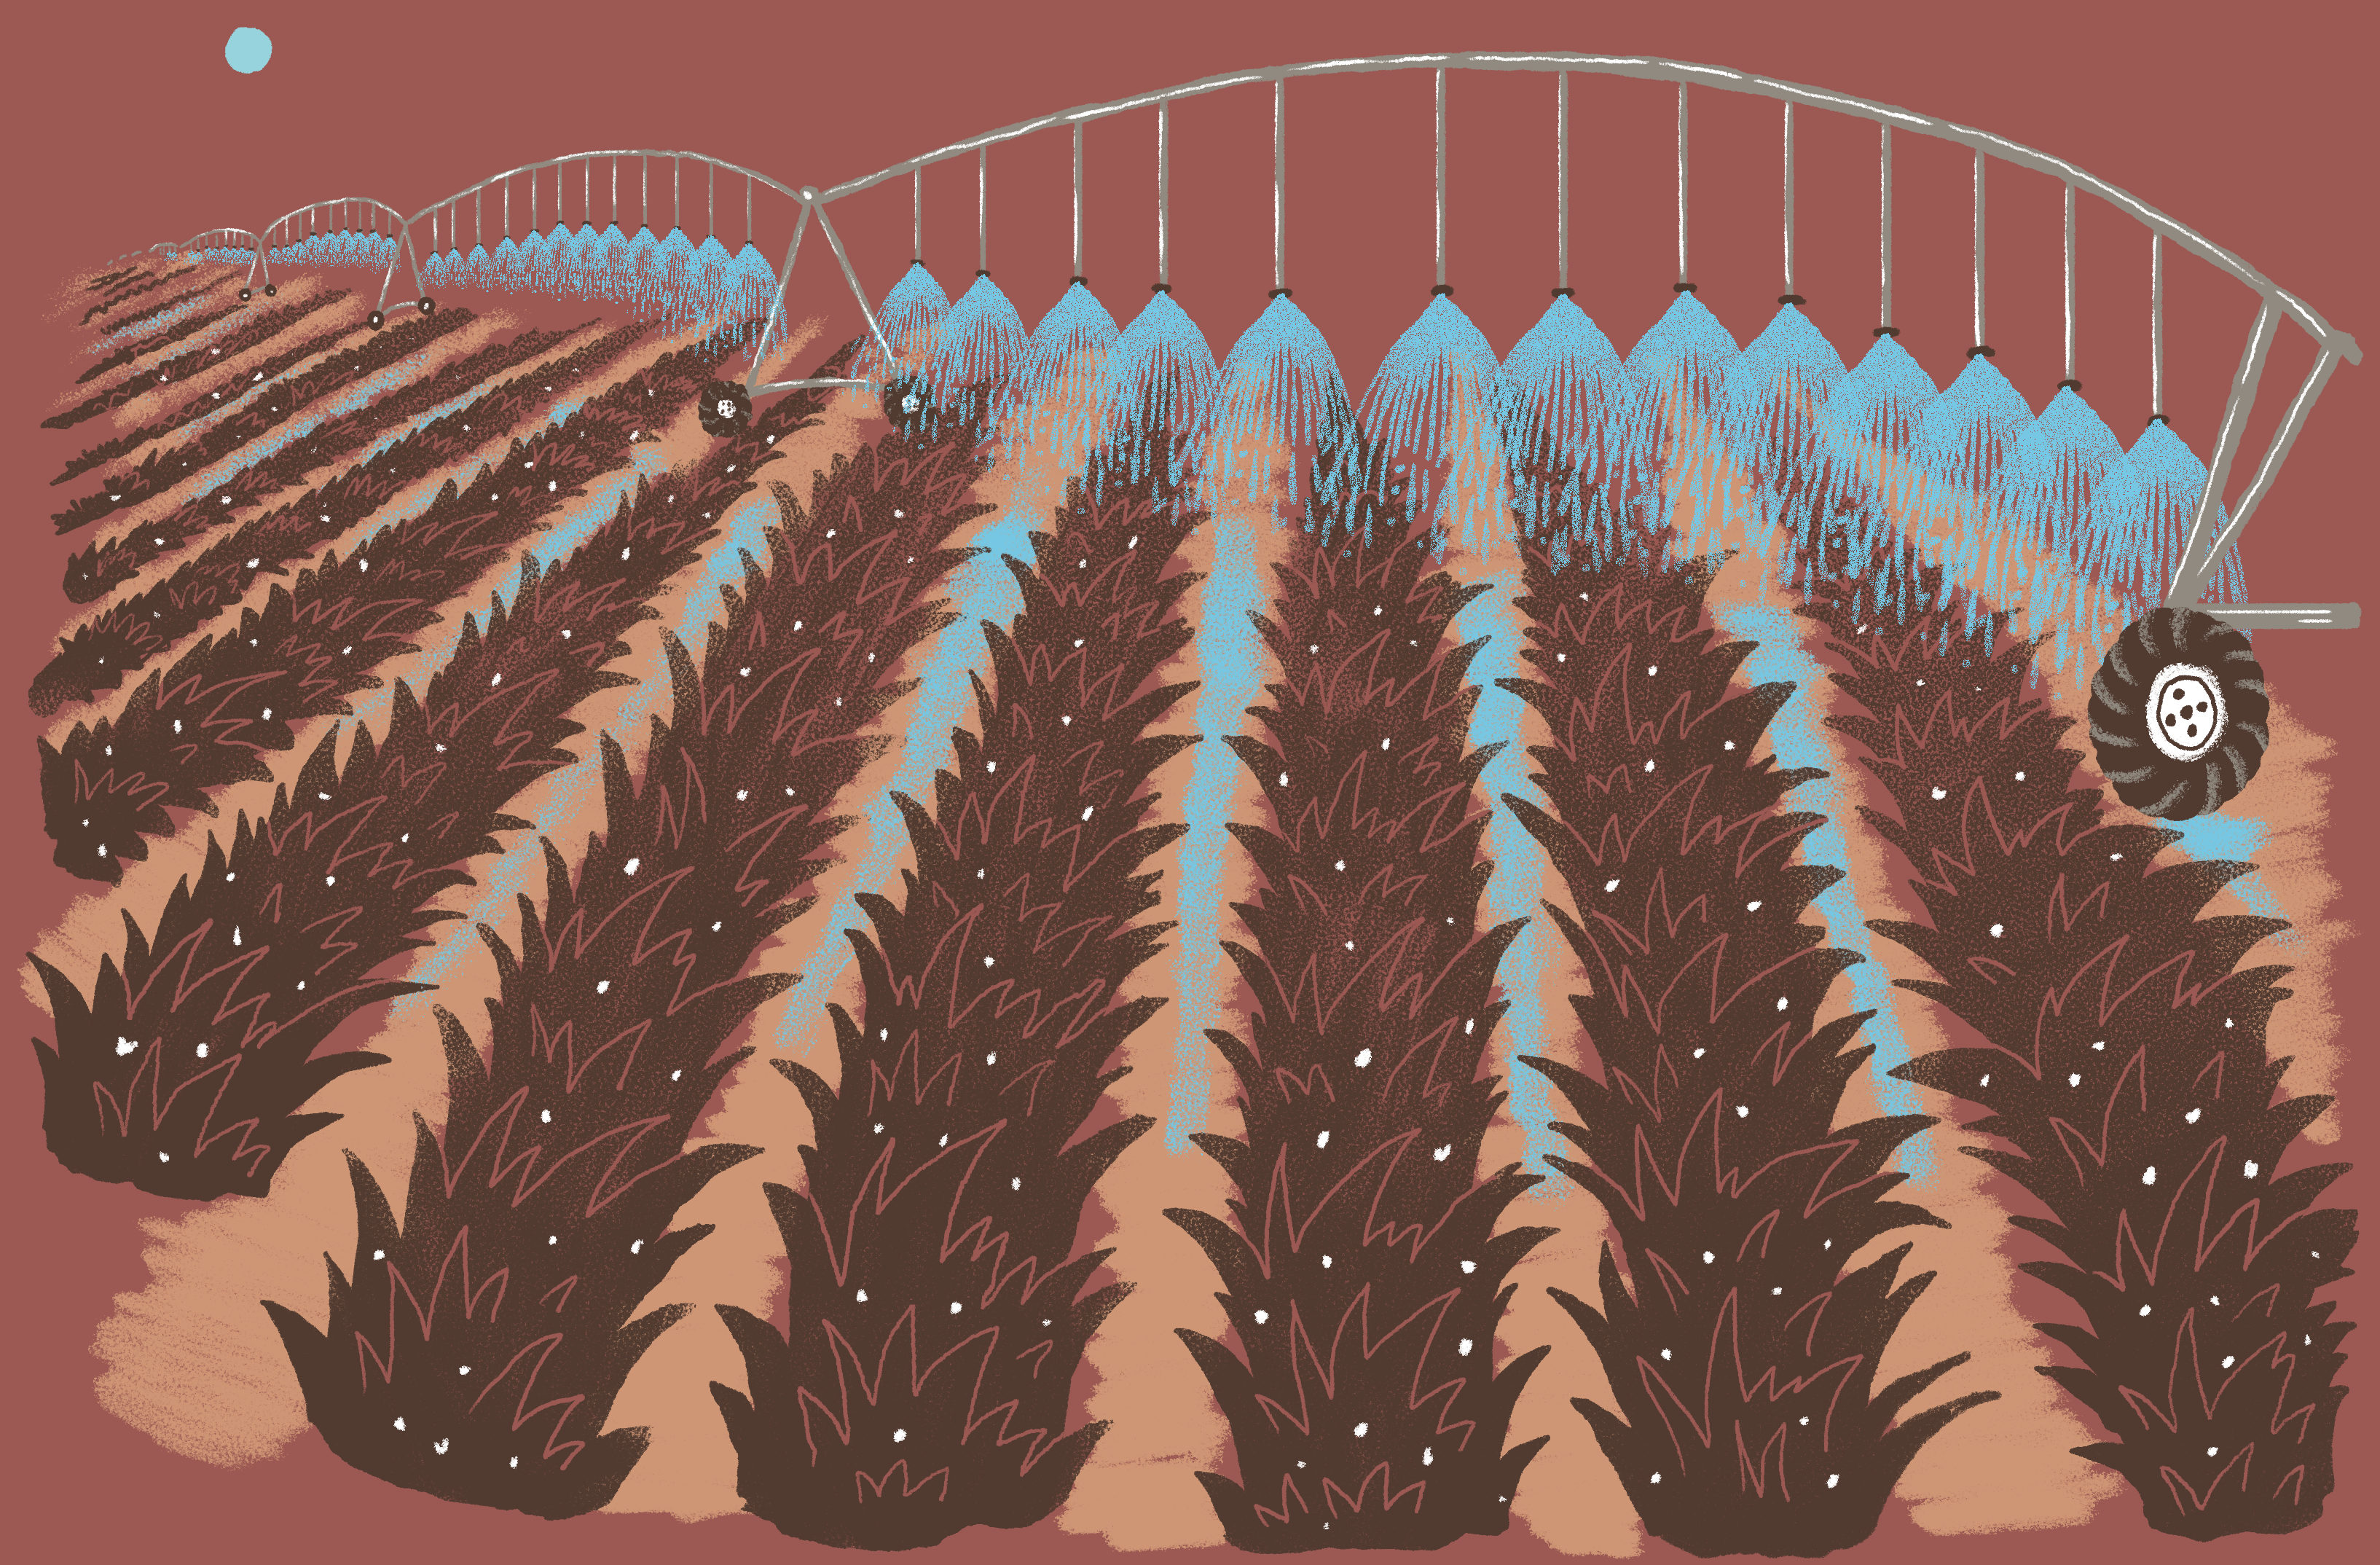 Illustration of irrigated fields in South Texas.